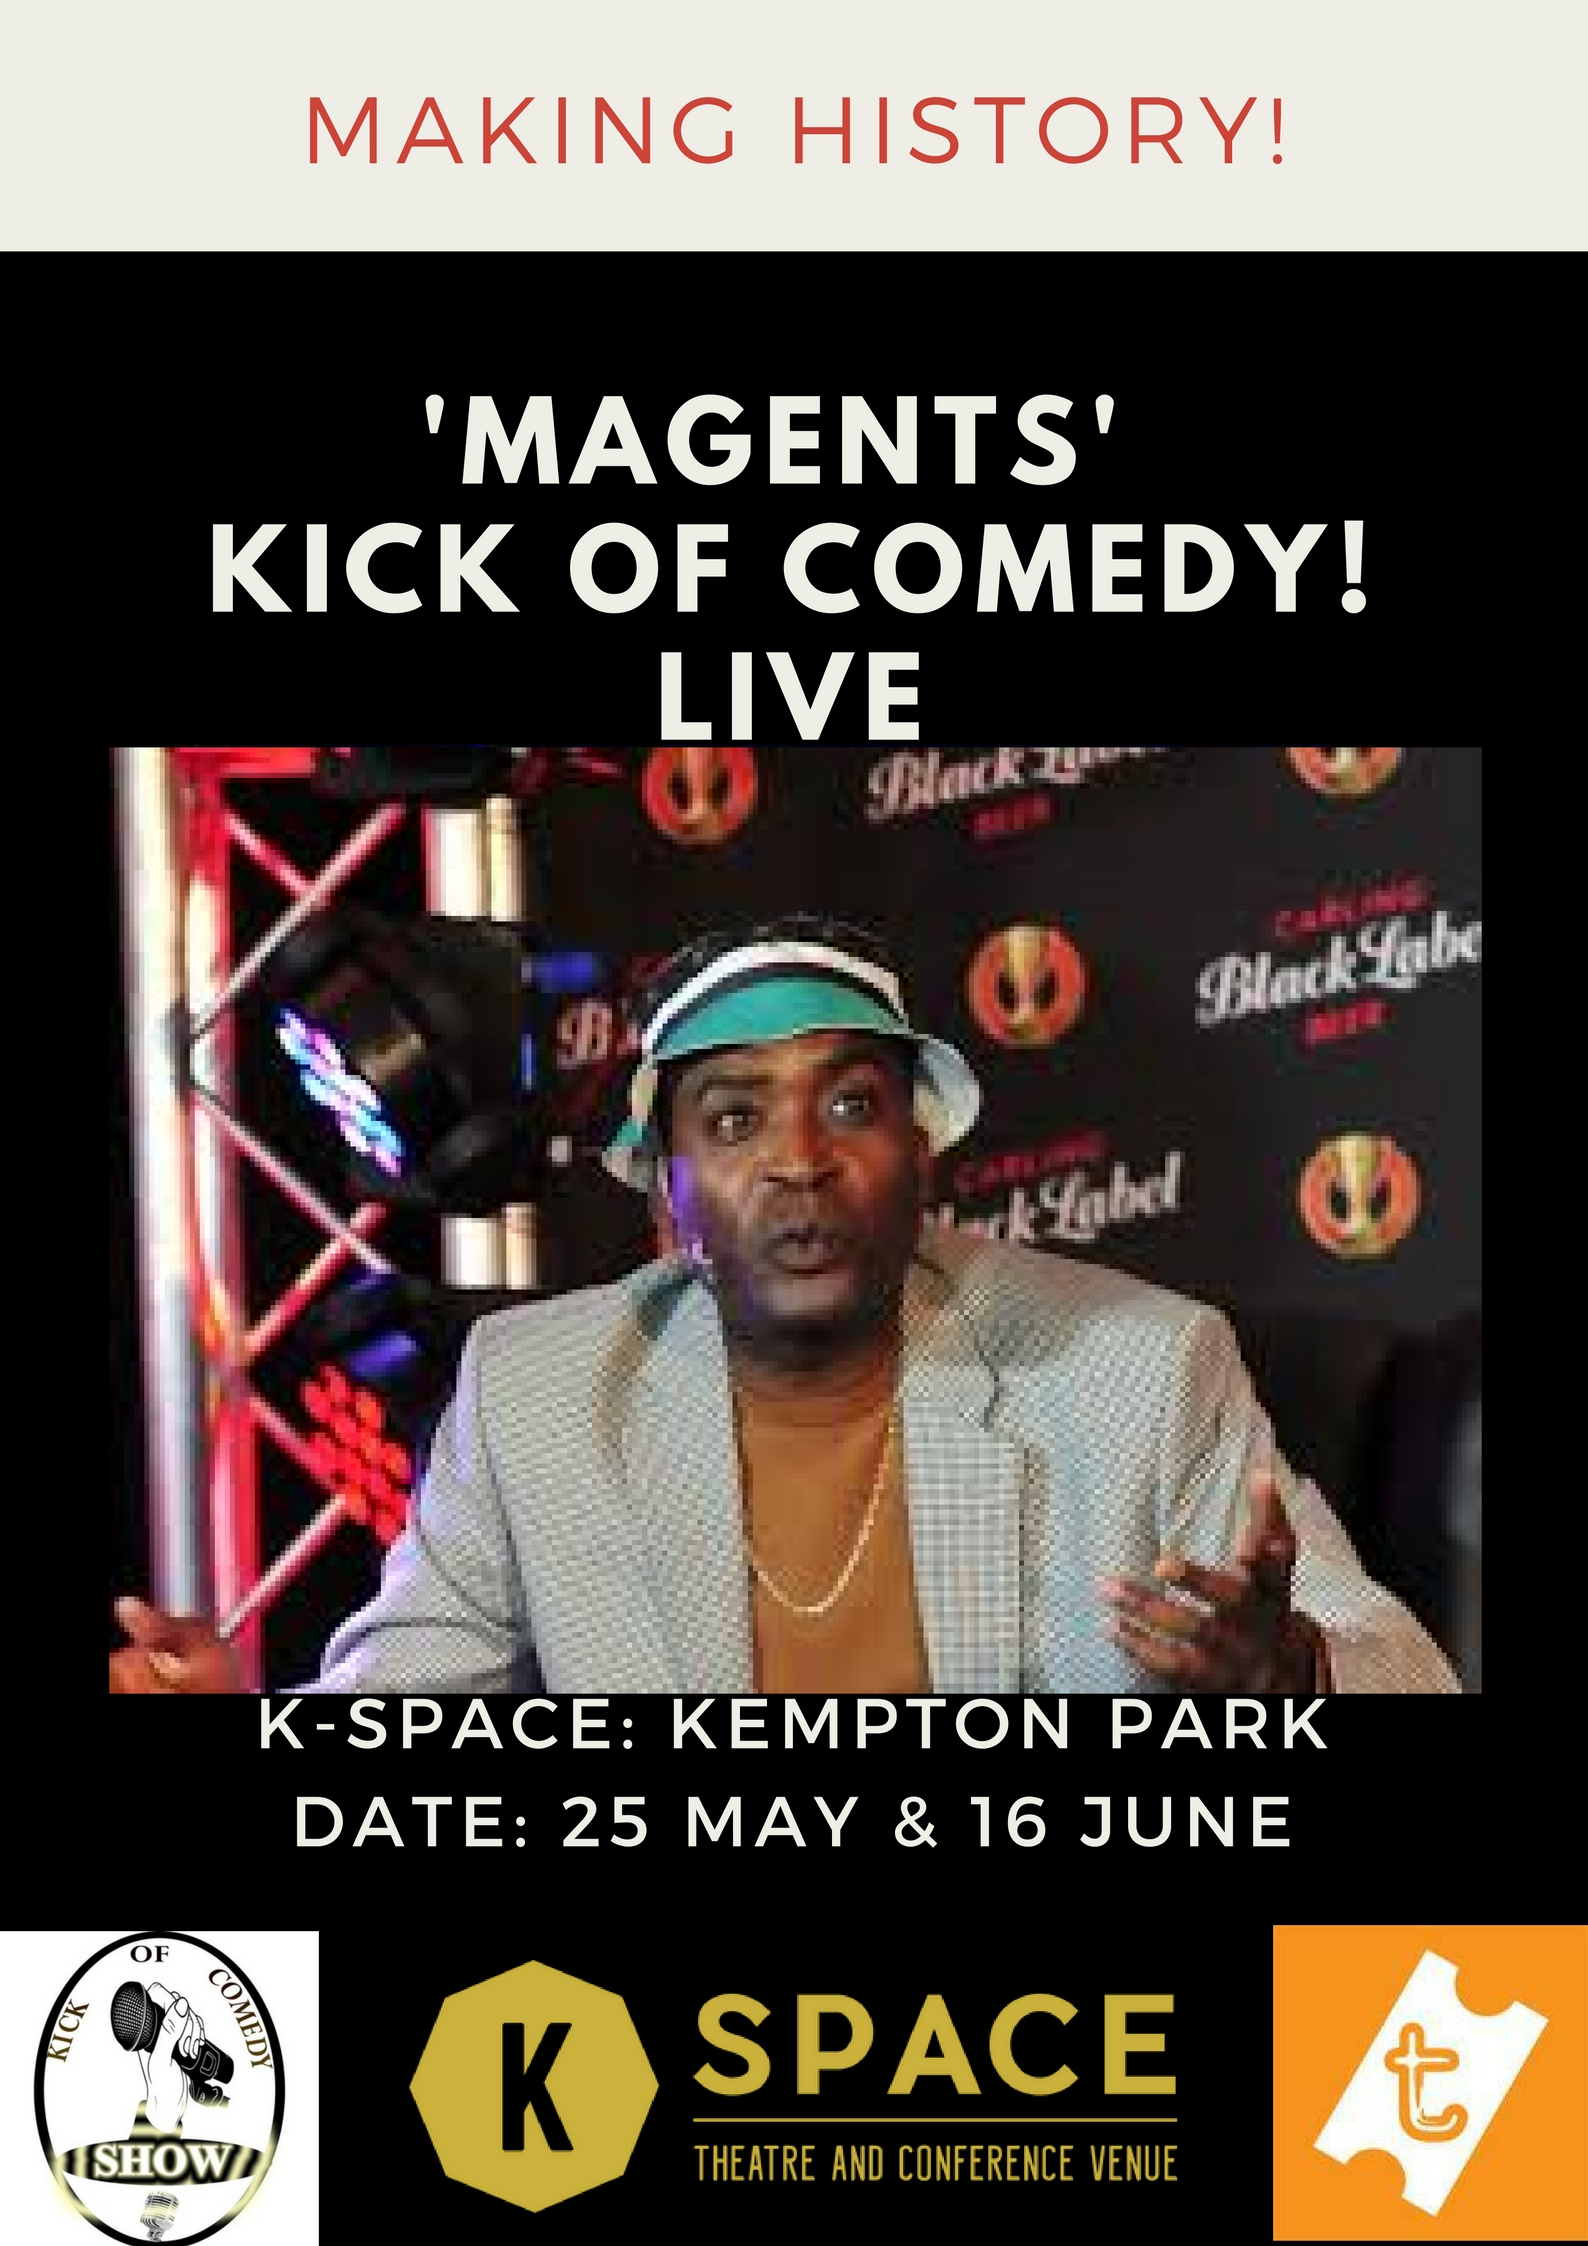 MAGENTS KICK OF COMEDY!LIVE jpeg1